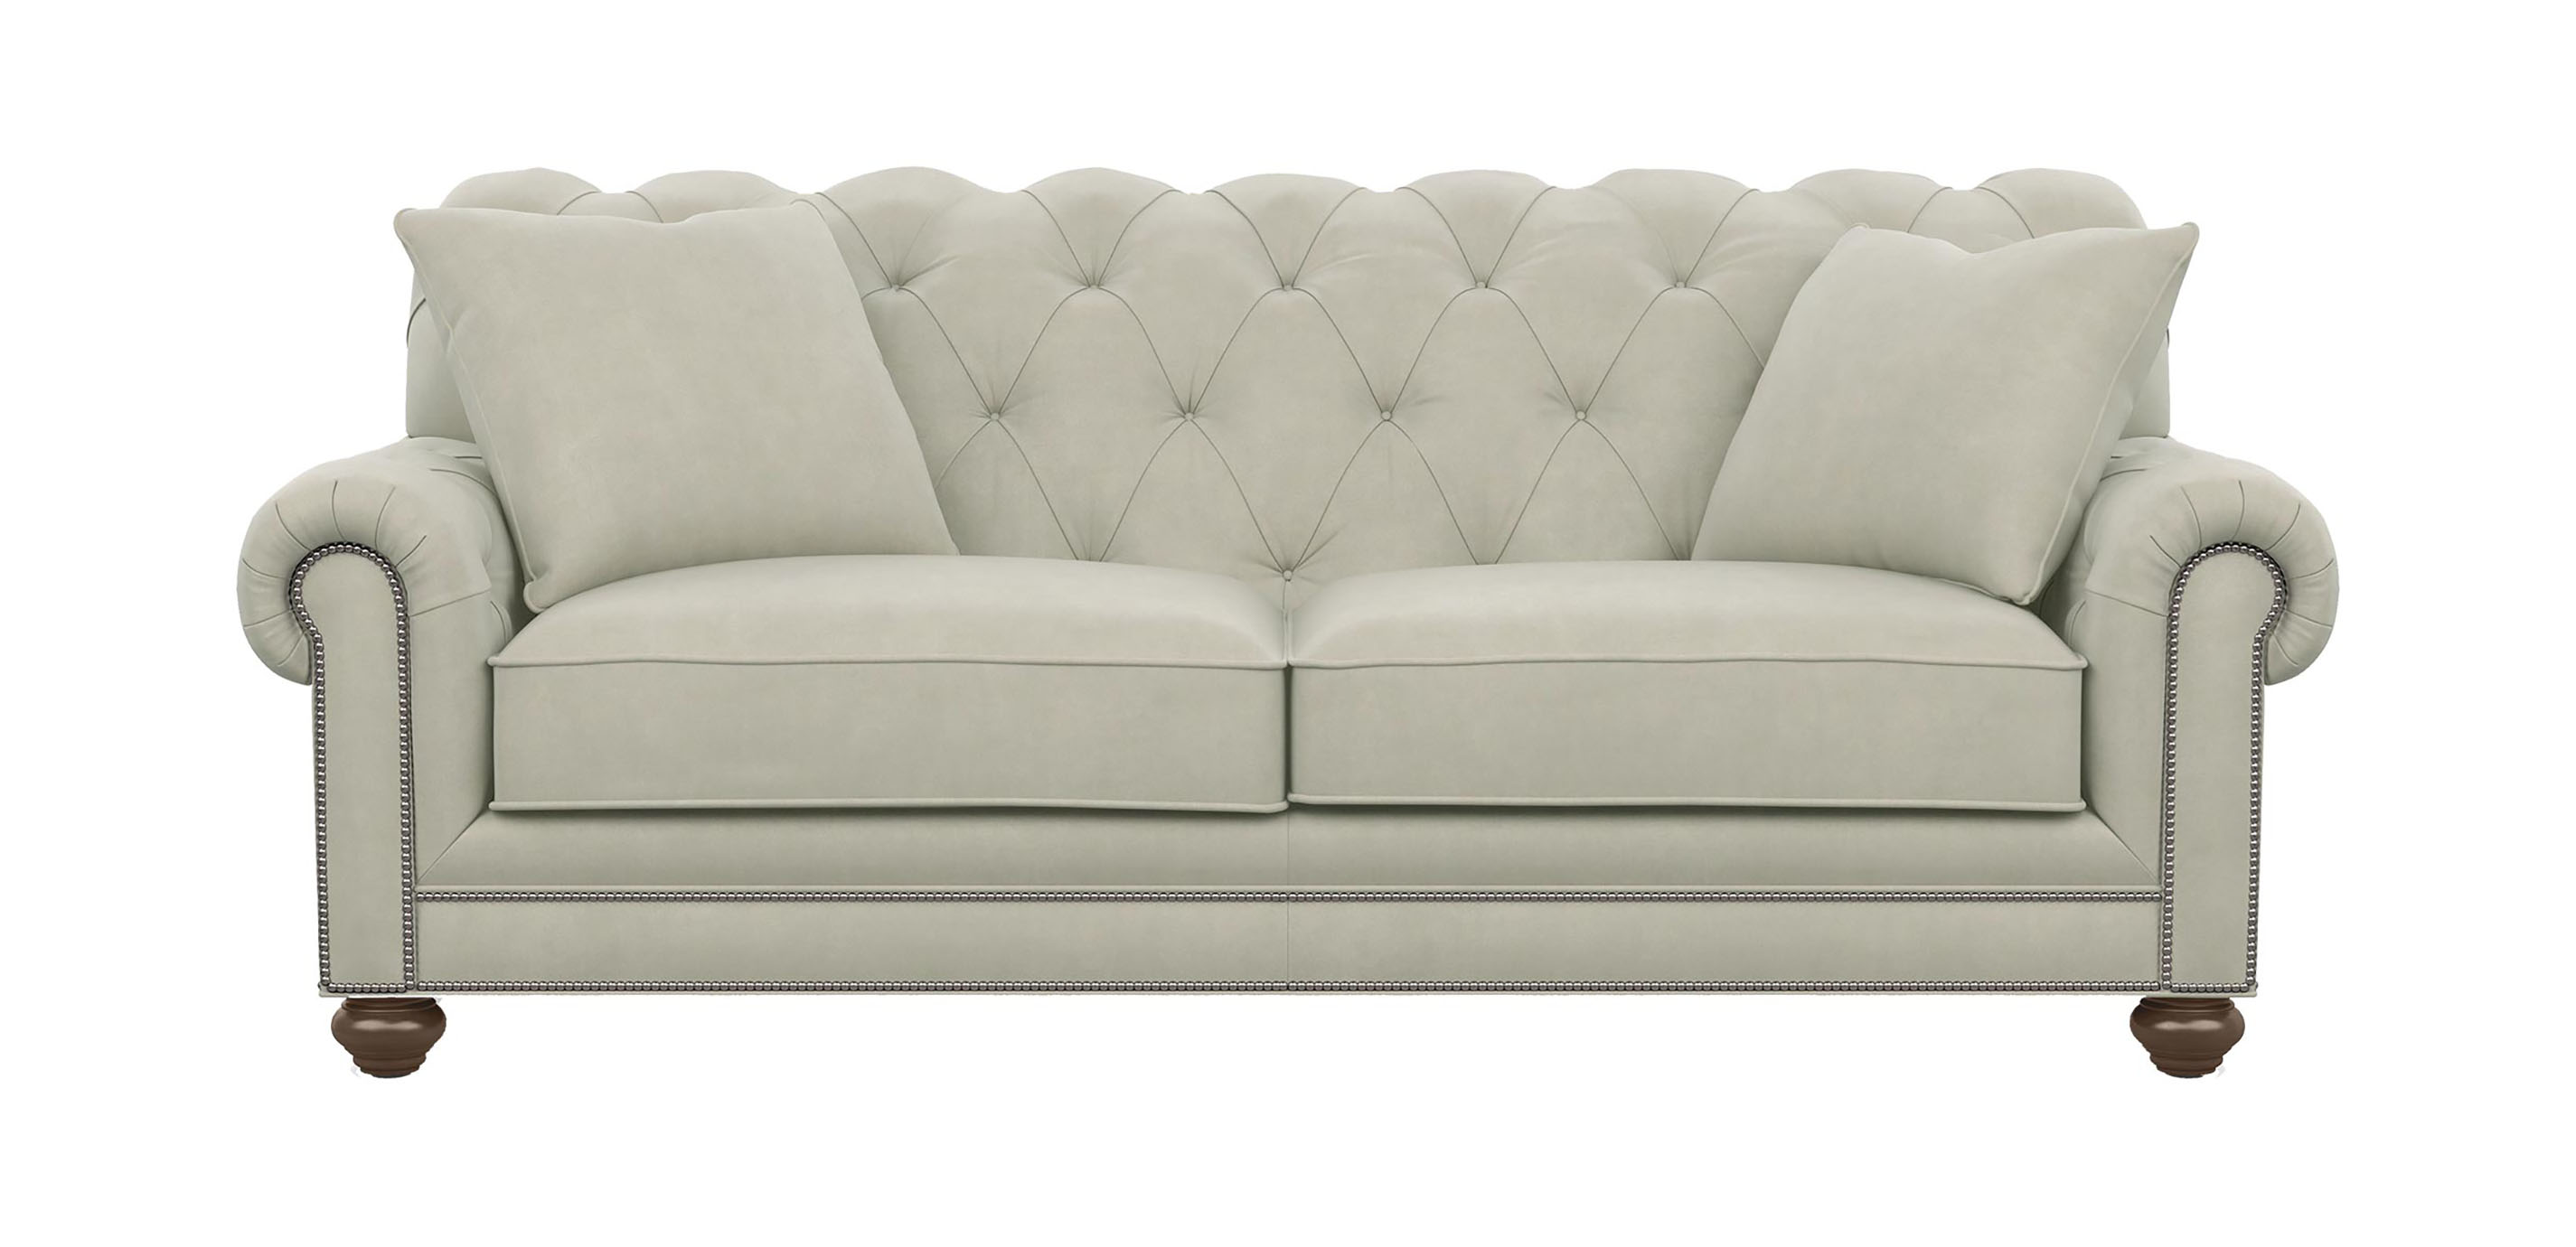 chadwick sofa ethan allen reviews crate and barrel giveaway 86